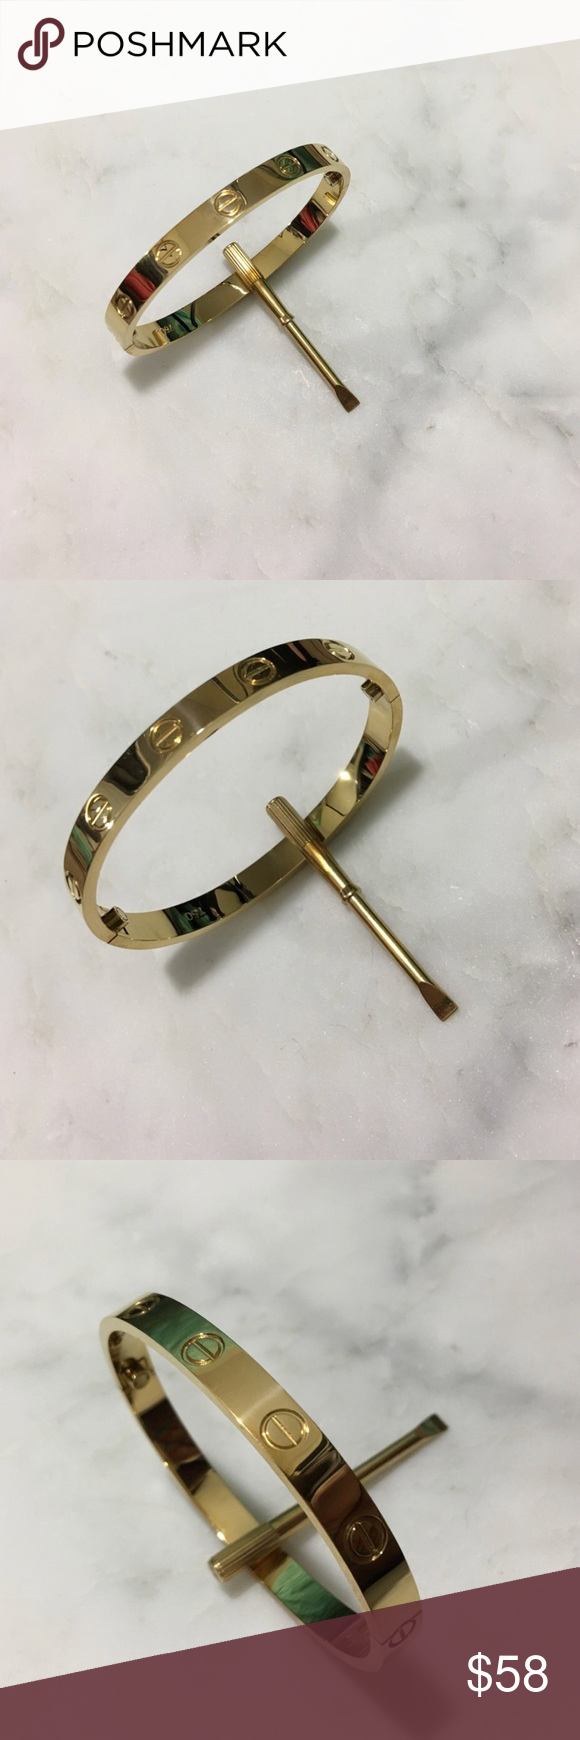 New last one gold bracelet bangle k gold bangle and bracelets